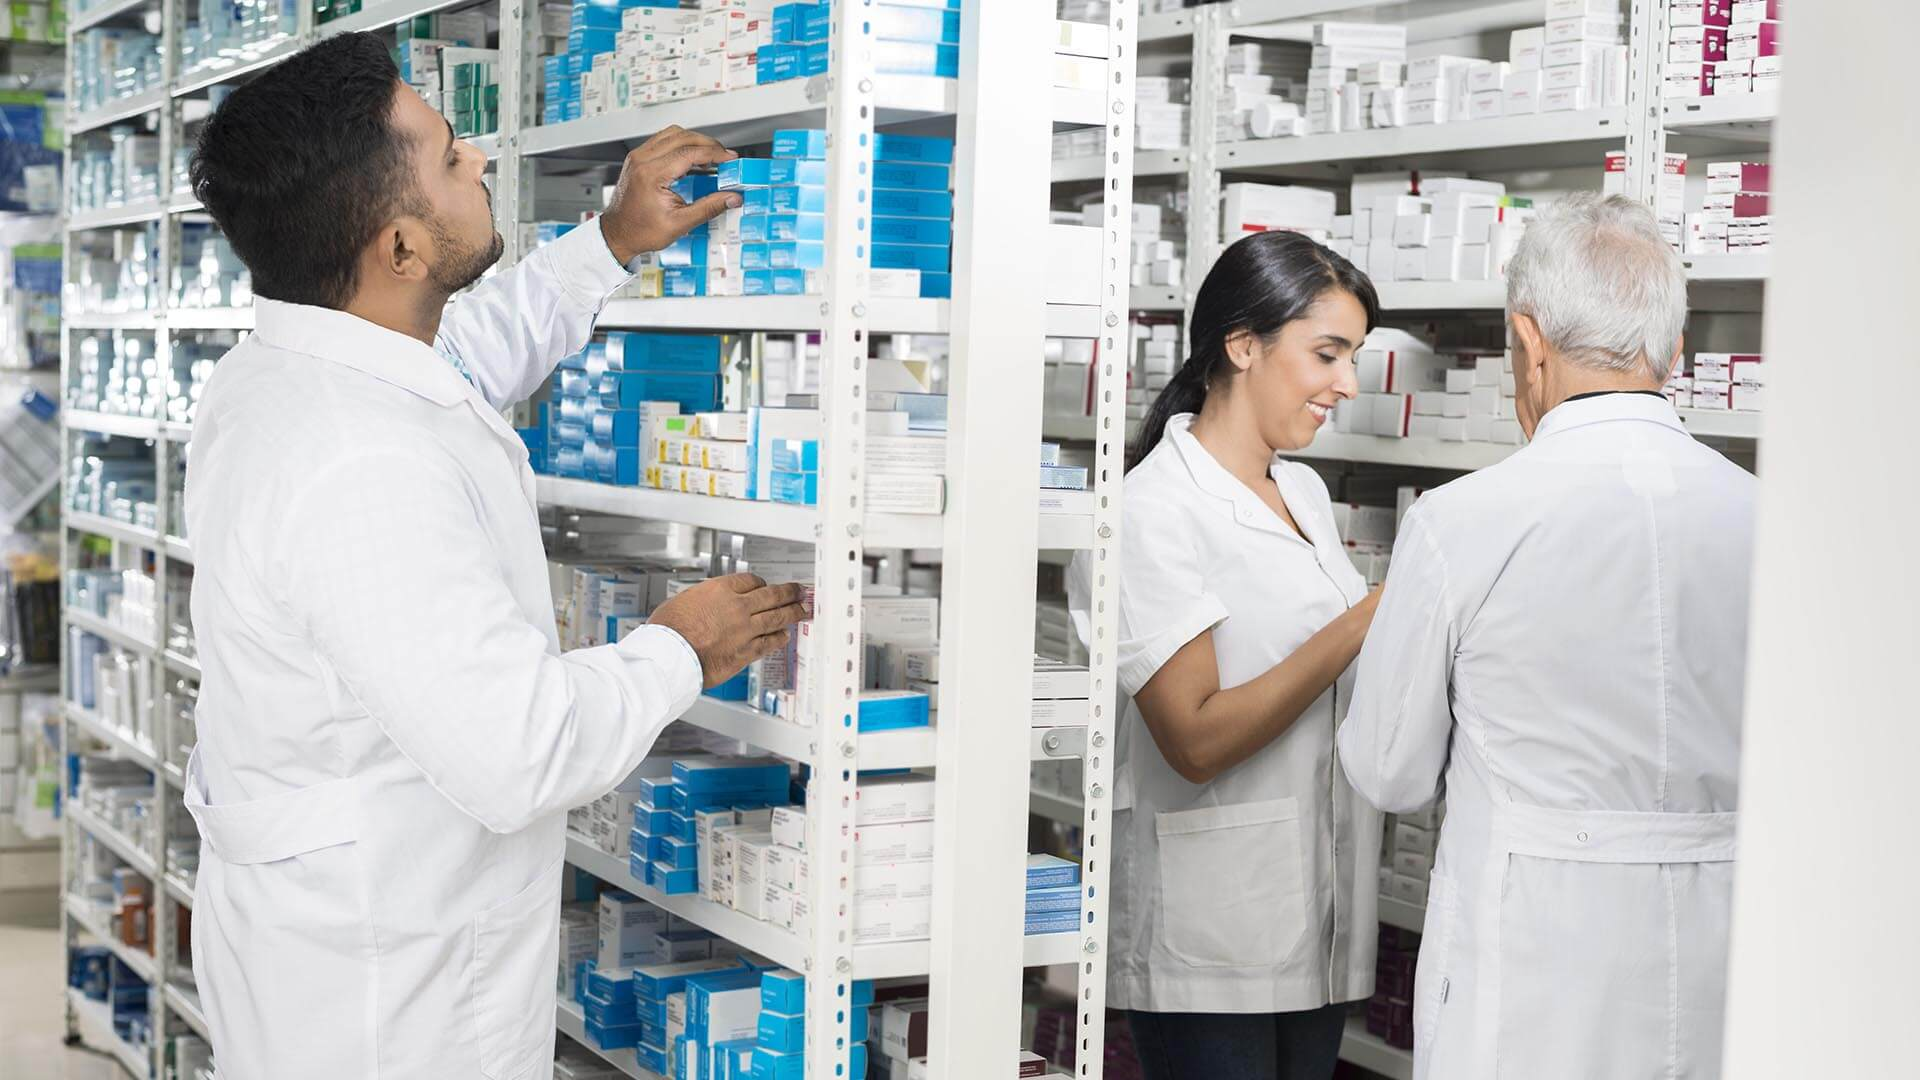 Morningside Pharmaceuticals supplies UK pharmacies.